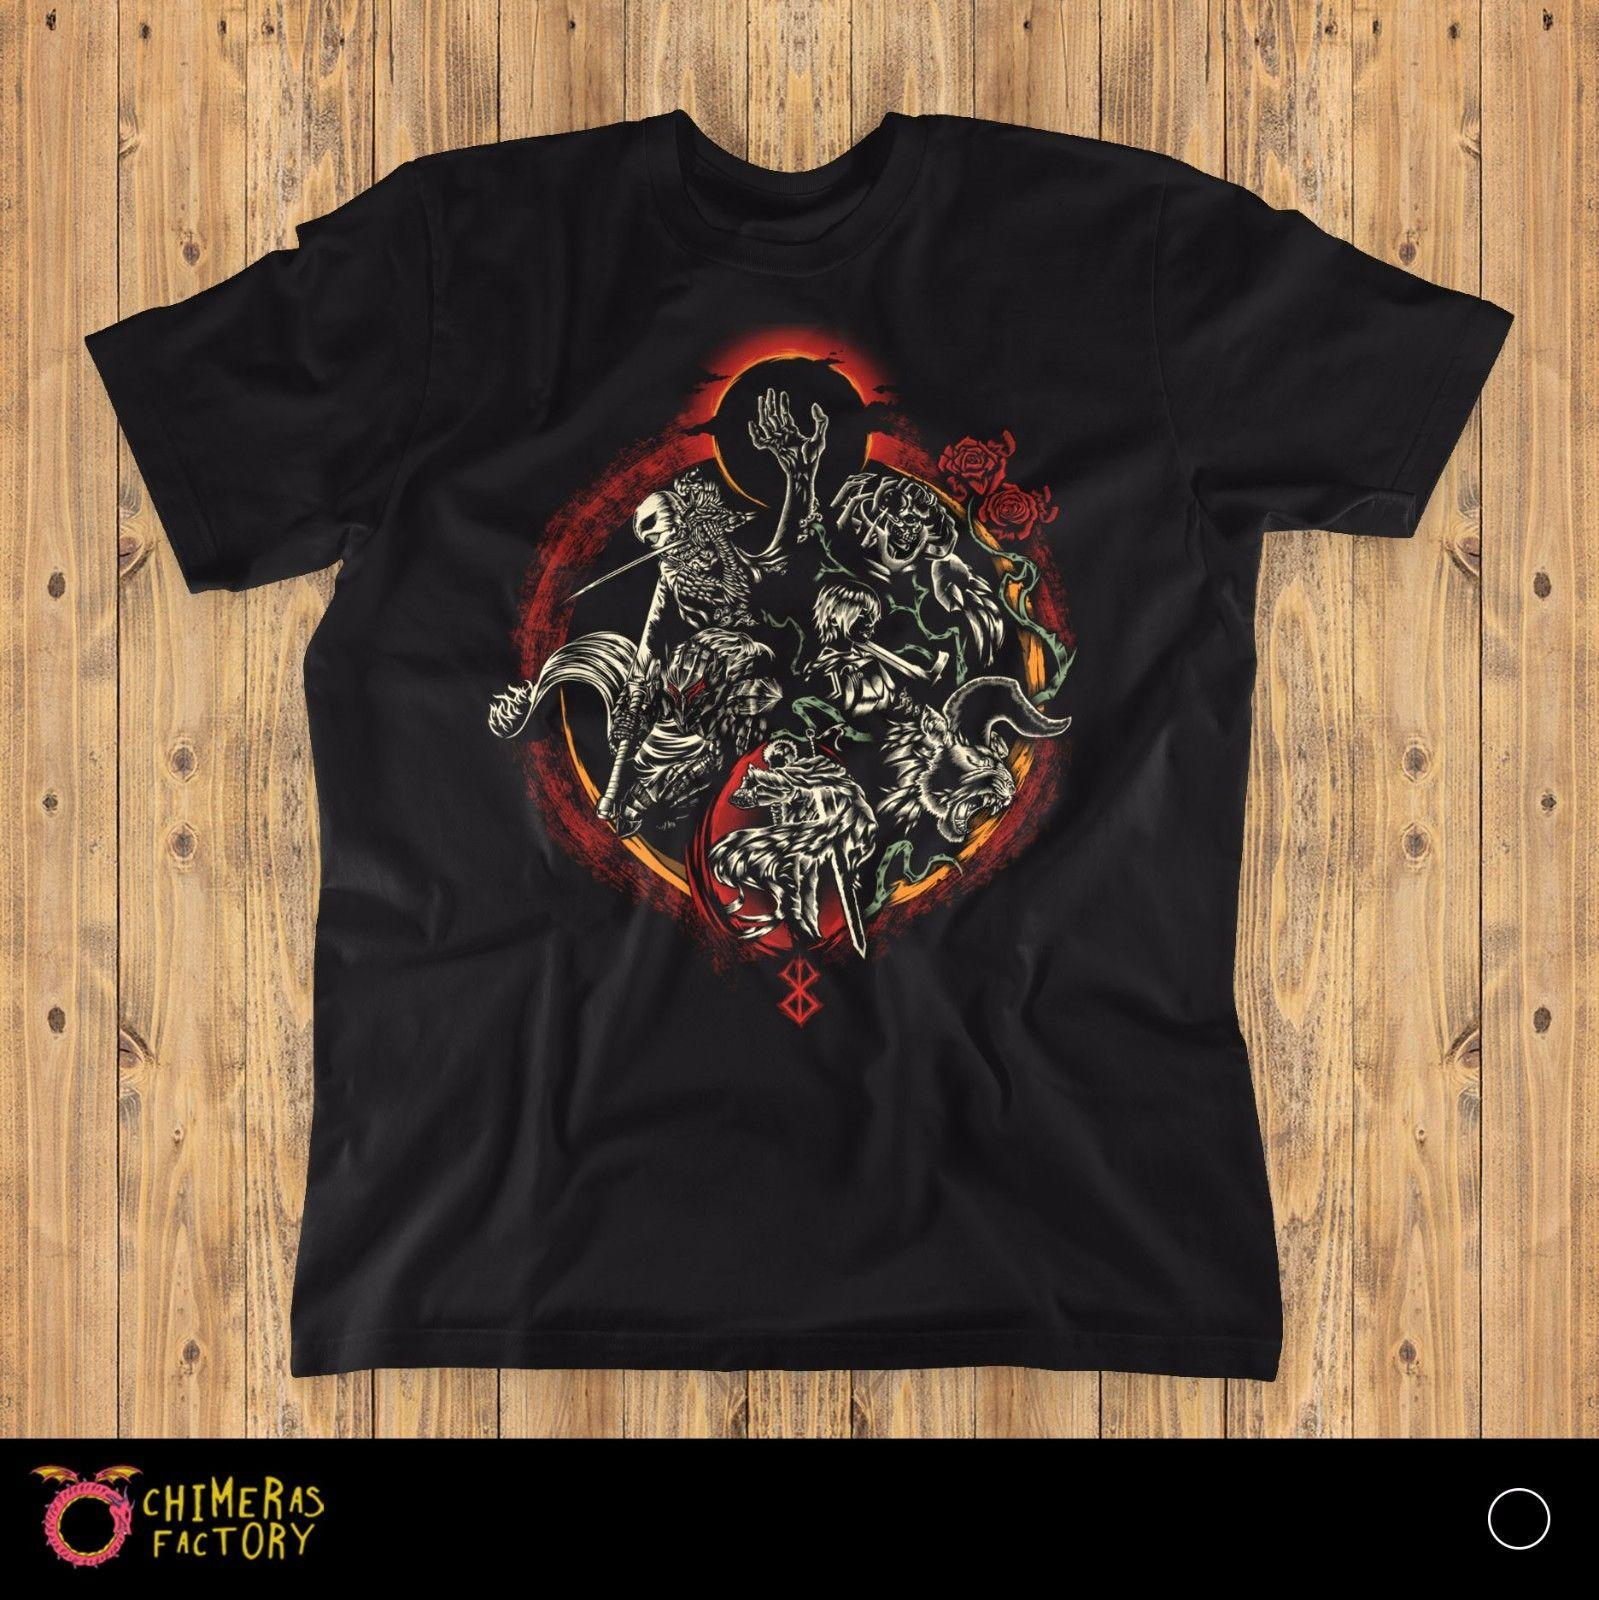 acb50dce T Shirt Factory Design Print Your Own T Shirts | Top Mode Depot